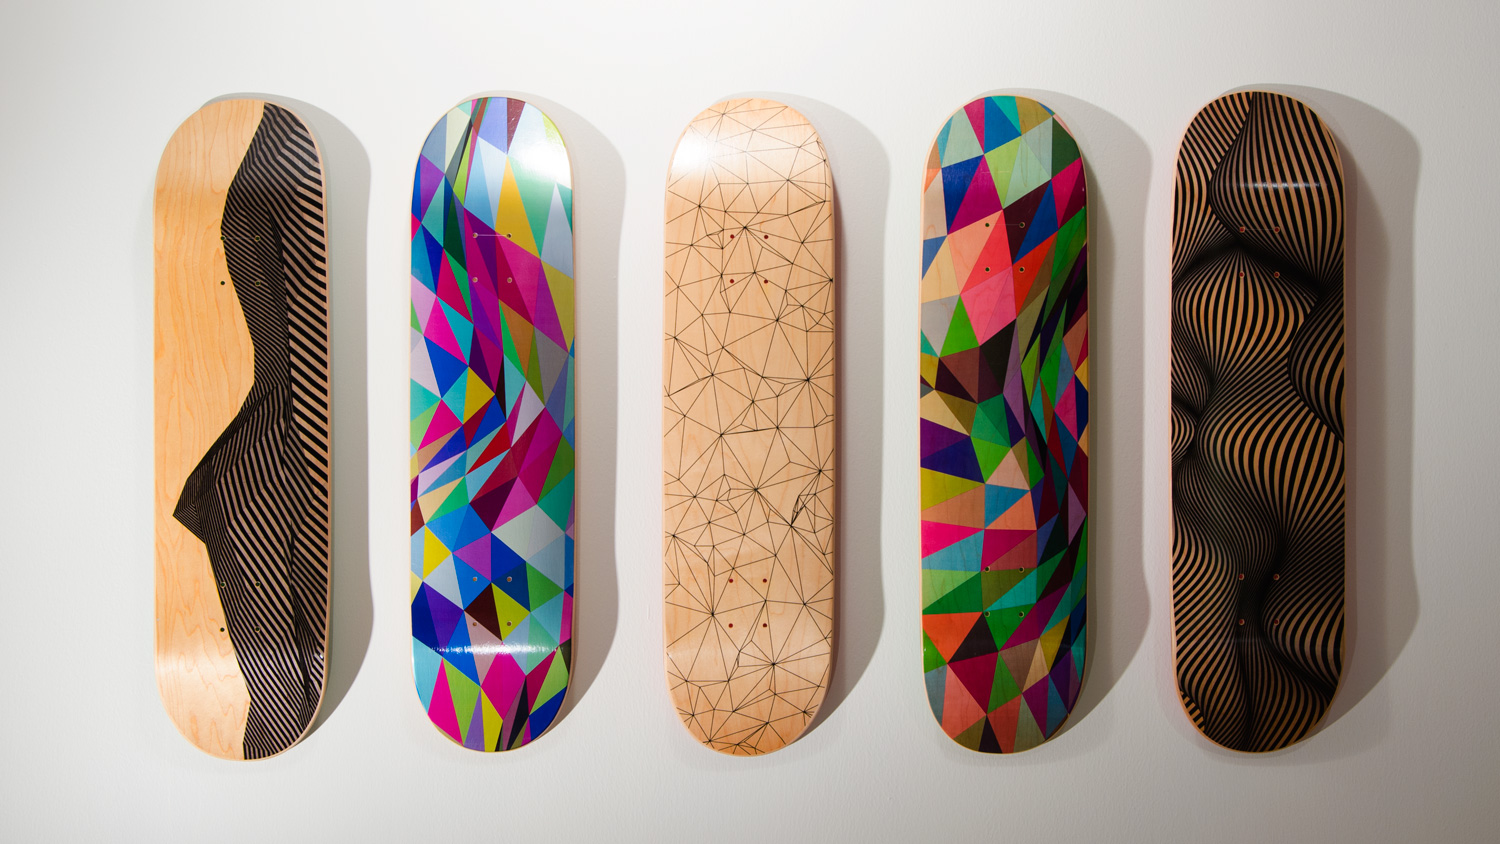 2012_T_Atwell_GenSk8_Collection.jpg